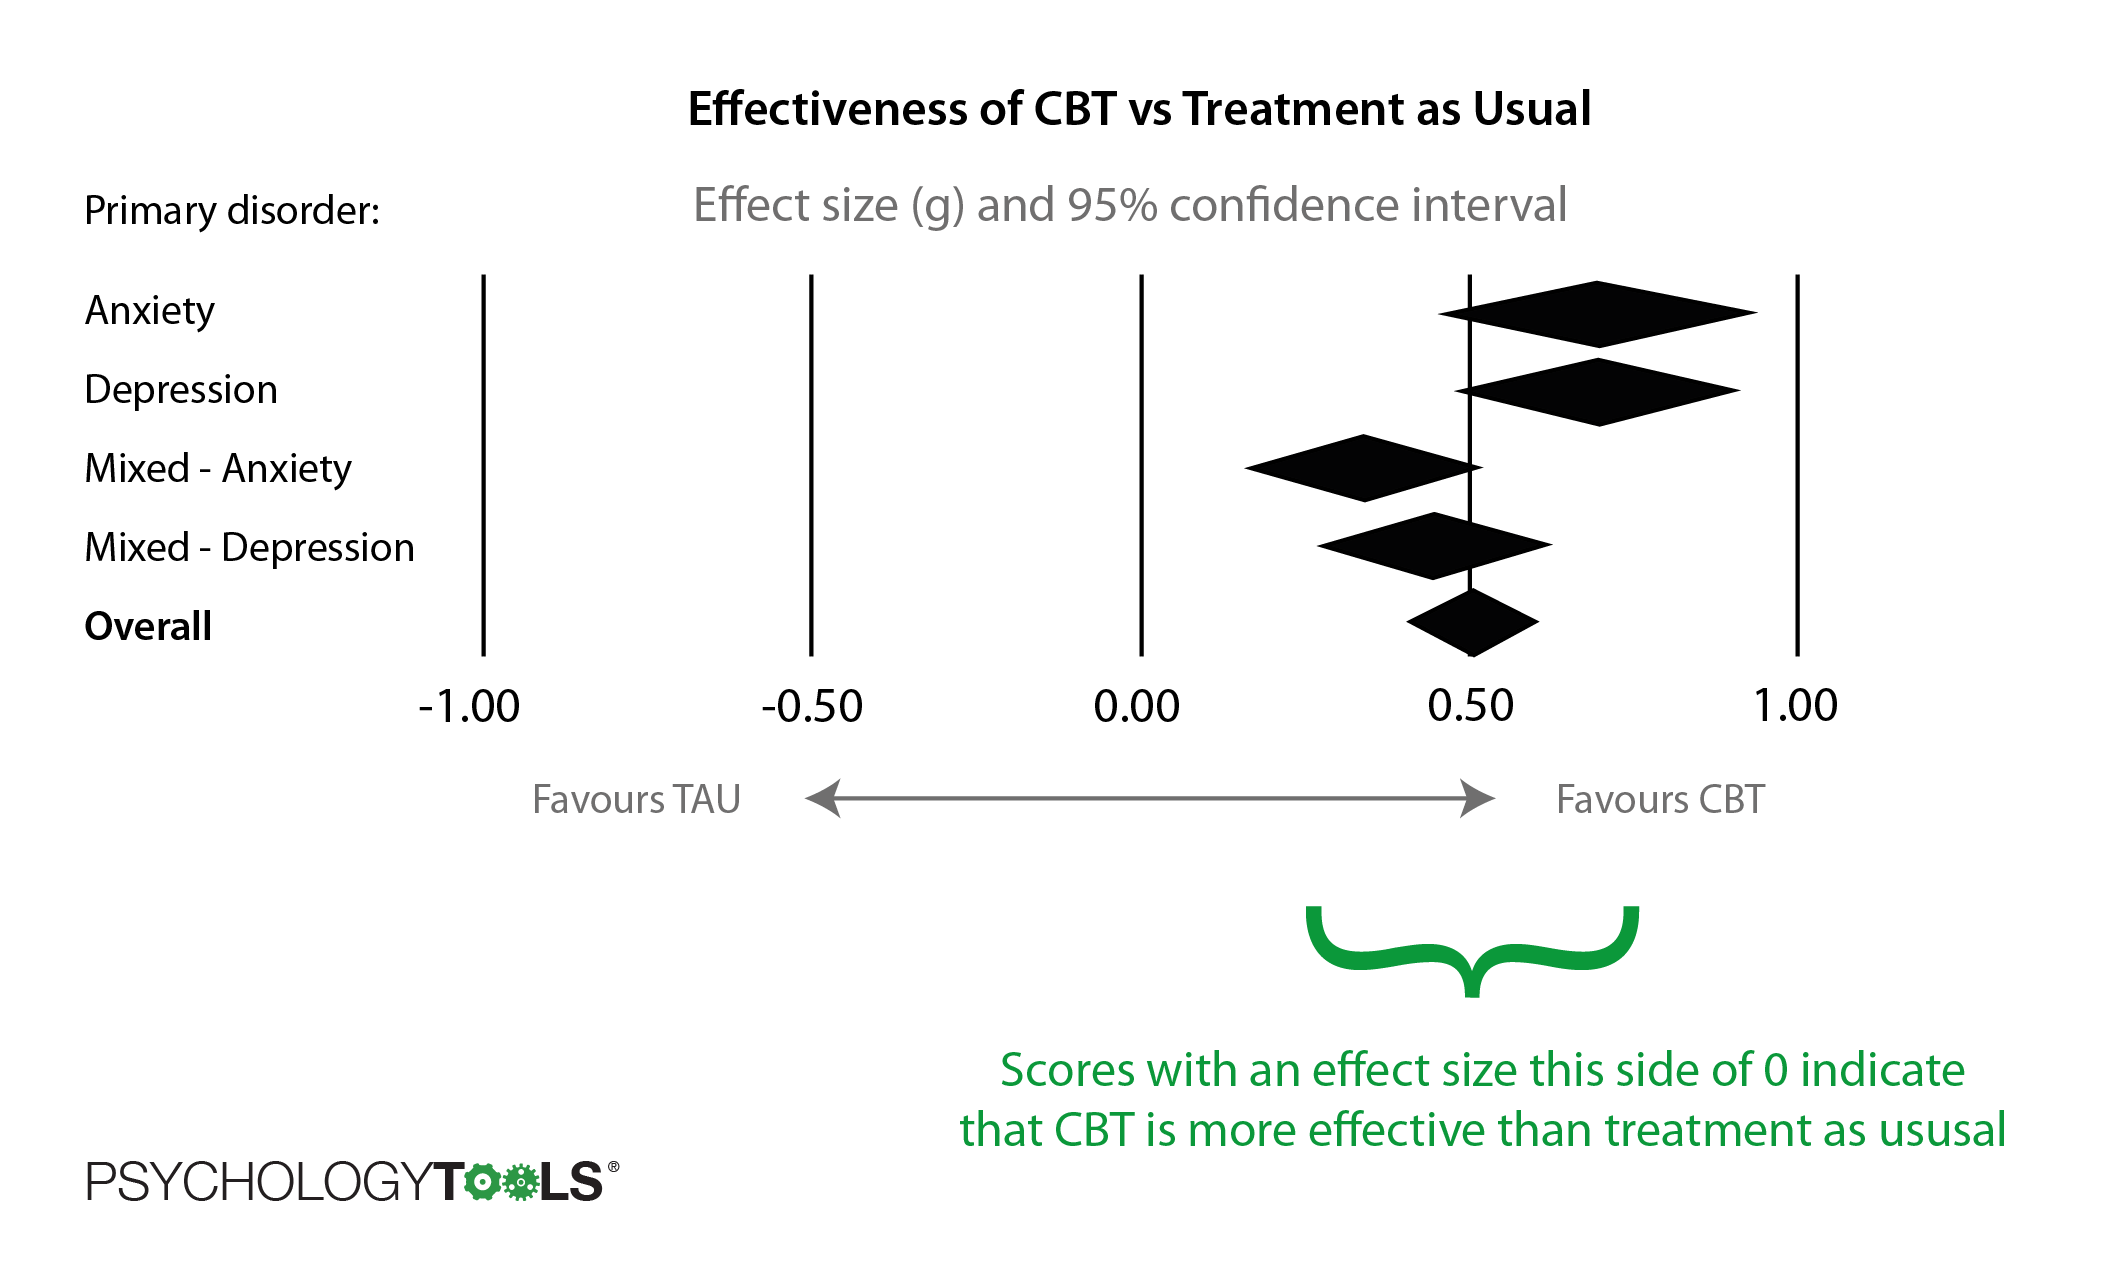 The effectiveness of CBT versus treatment as usual